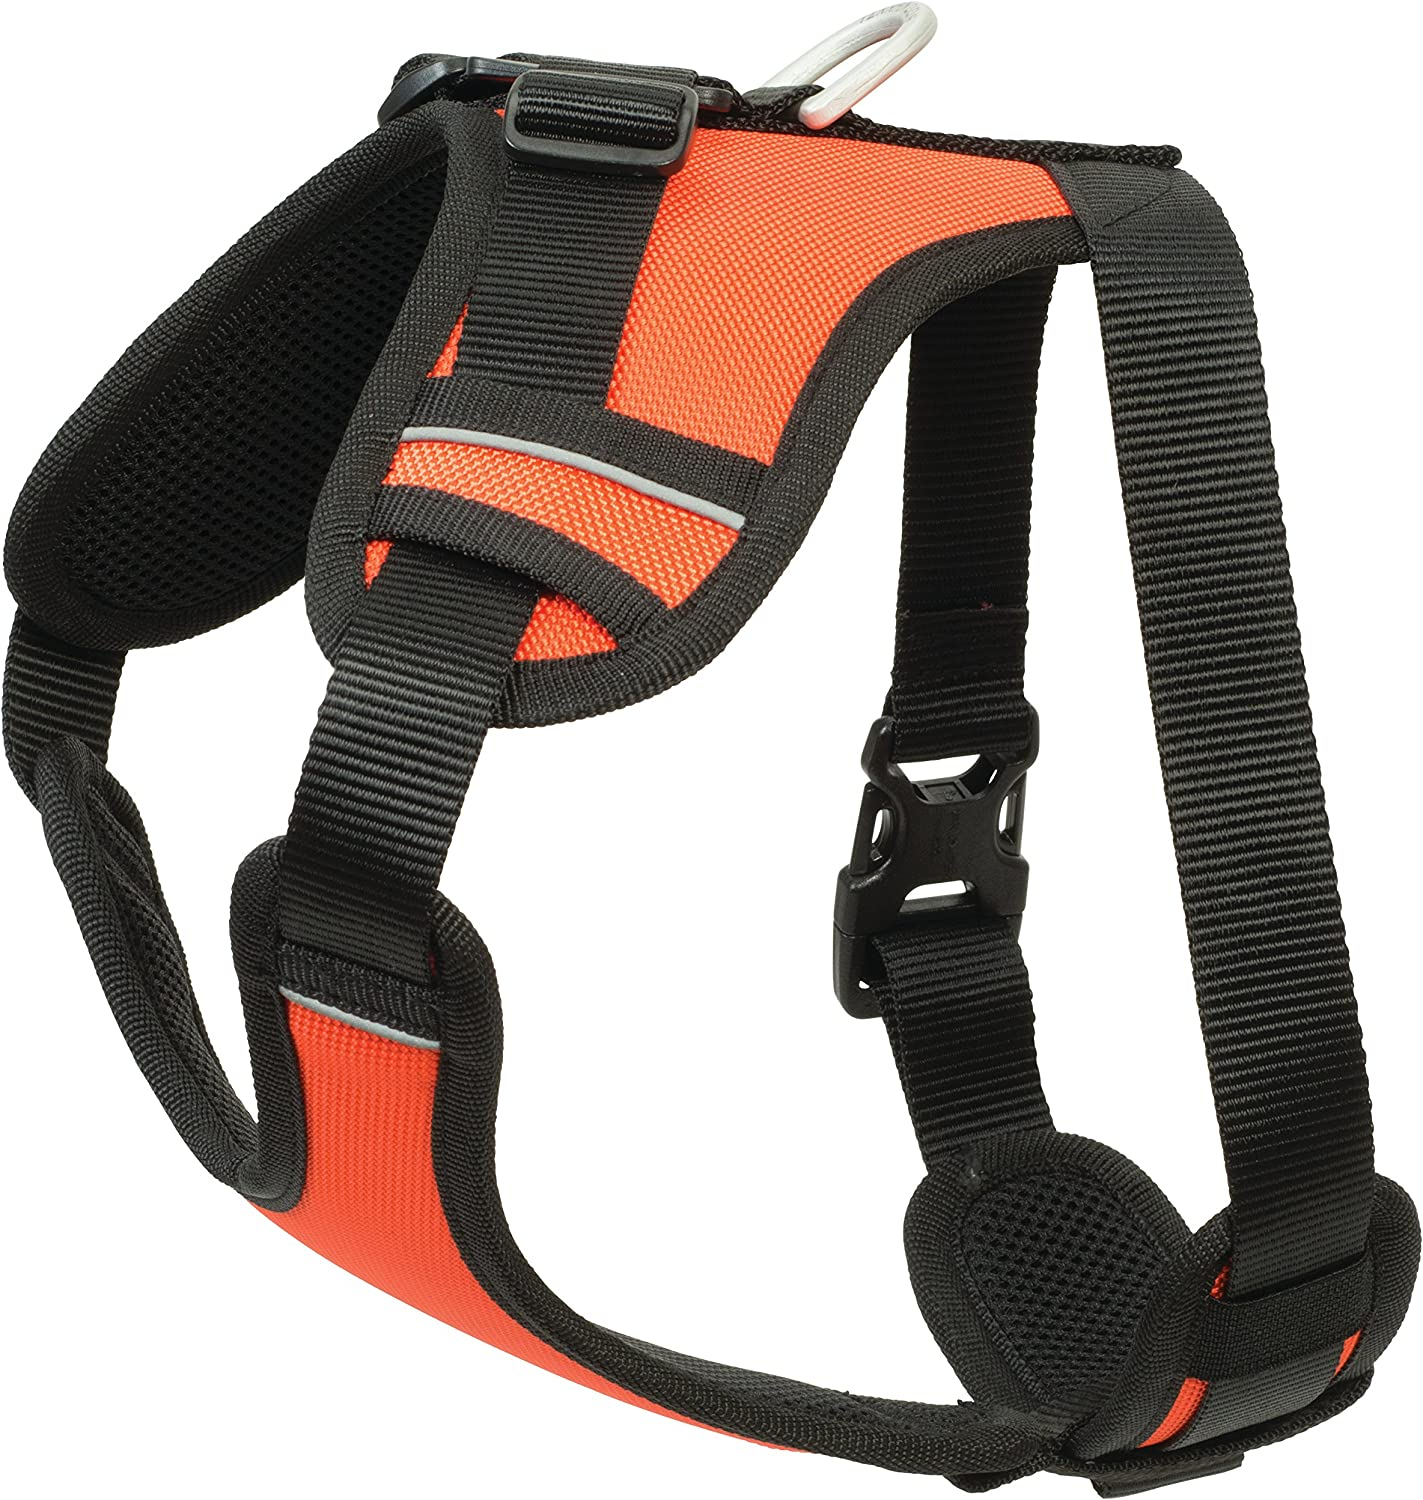 Terrain D.O.G. Heavy Duty Dog Harness